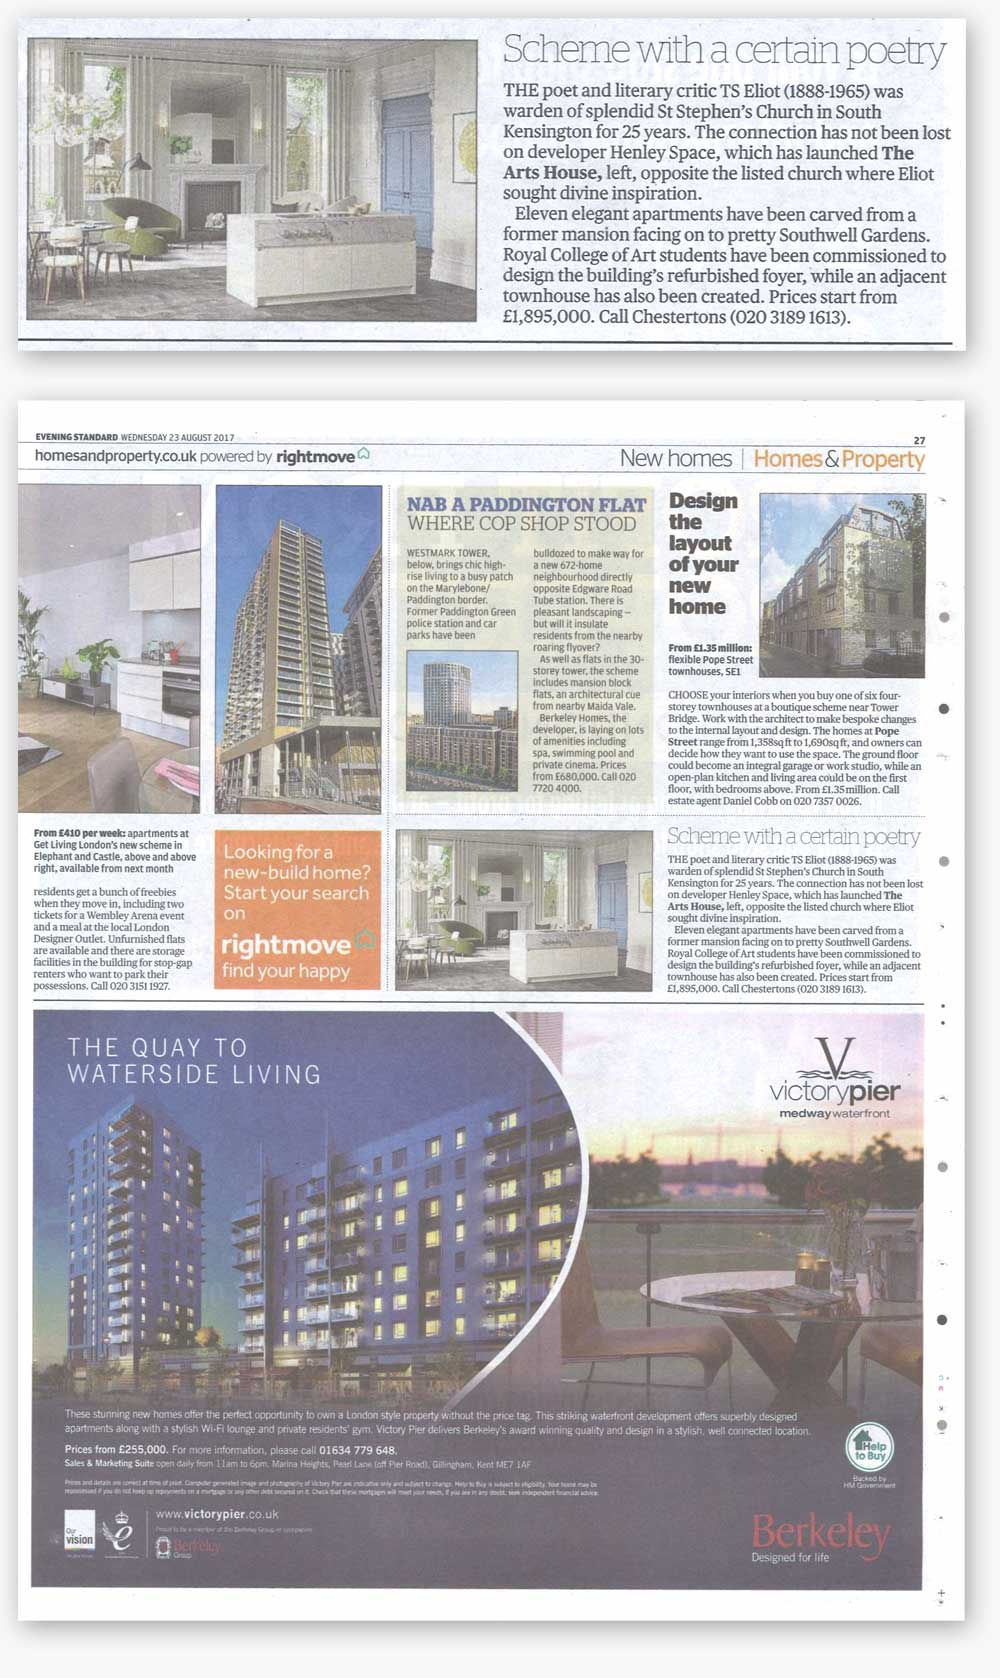 An image of the article featuring the Arts House luxury development in the 24th August Edition of the Evening Standard